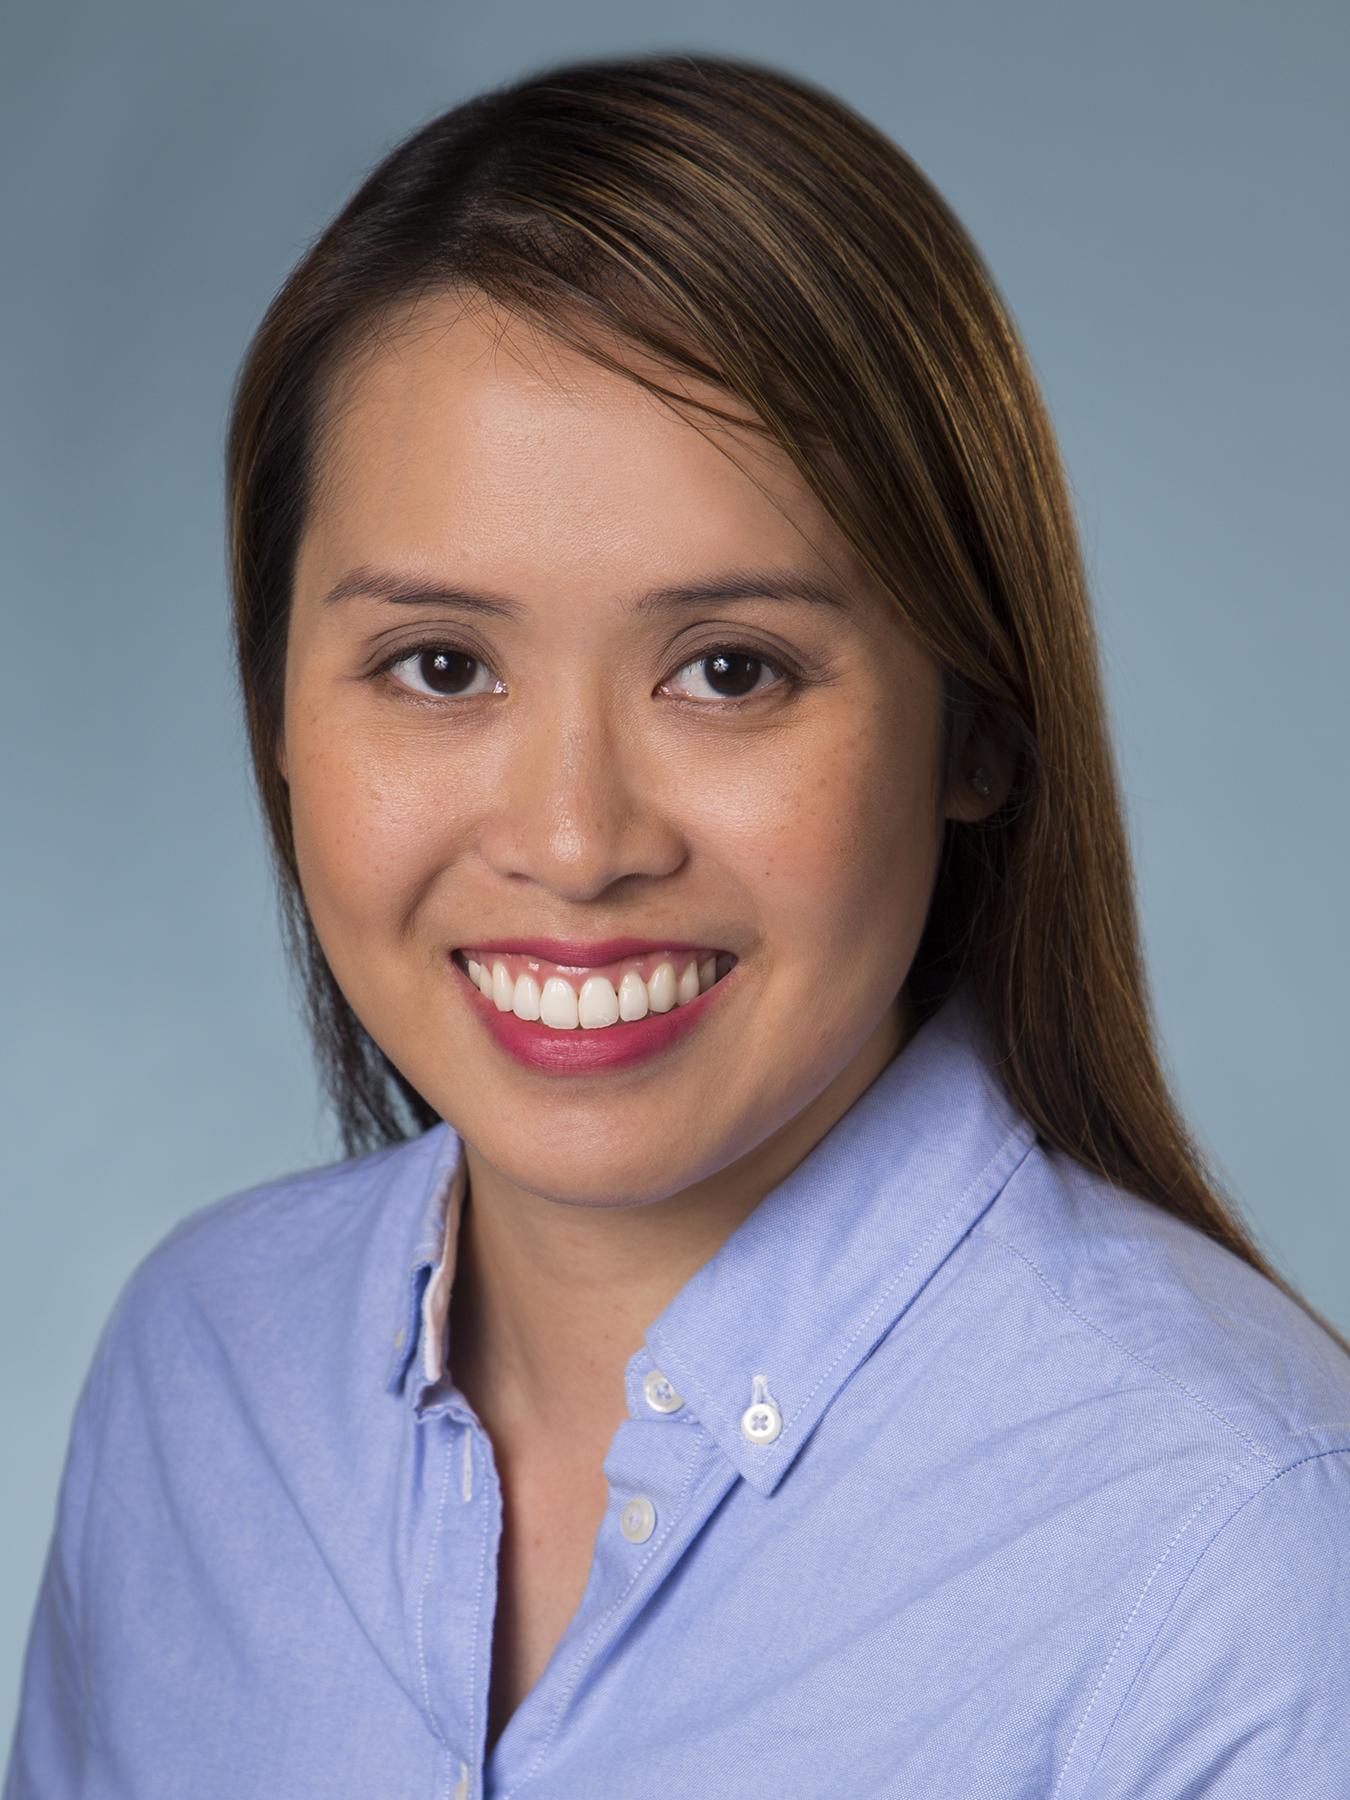 Annabelle R. Chua Norwood, MD